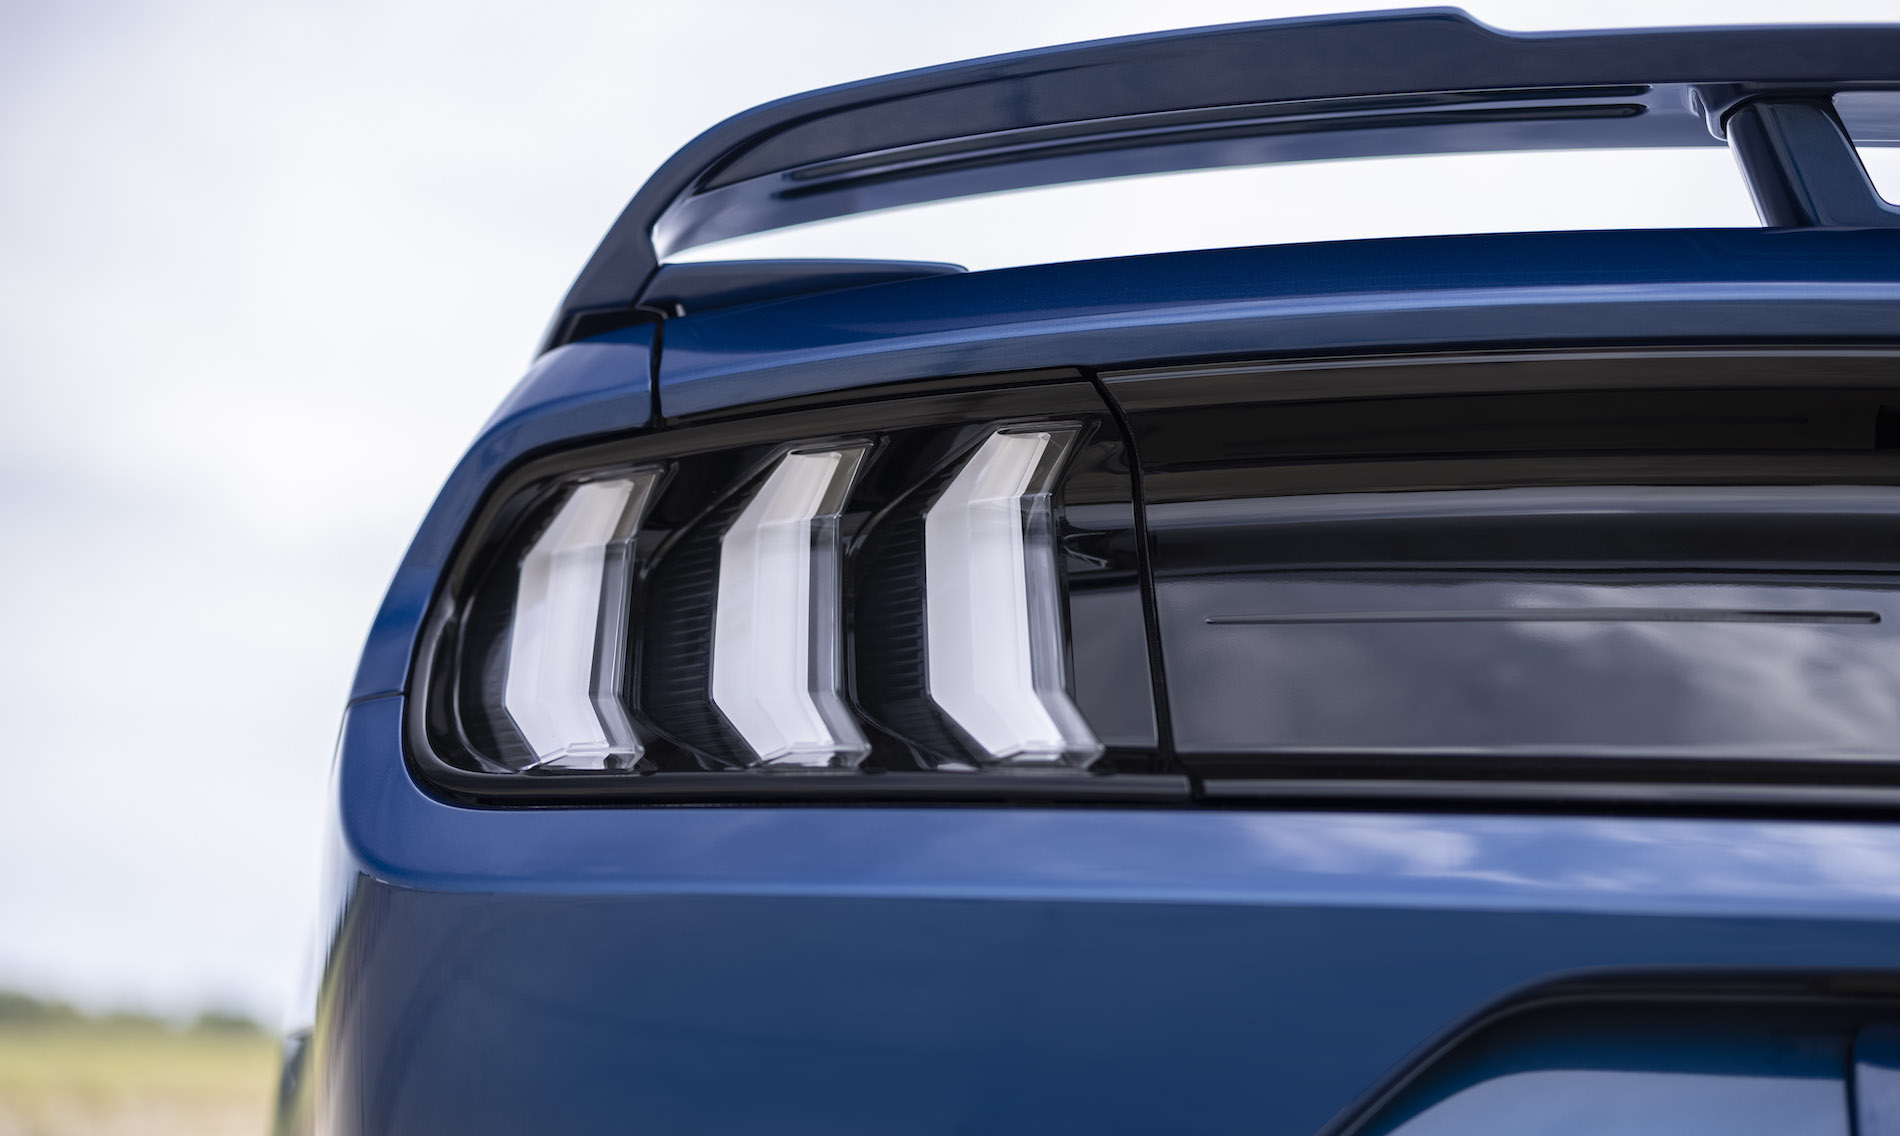 2022 Ford Mustang Stealth Edition_09.jpg